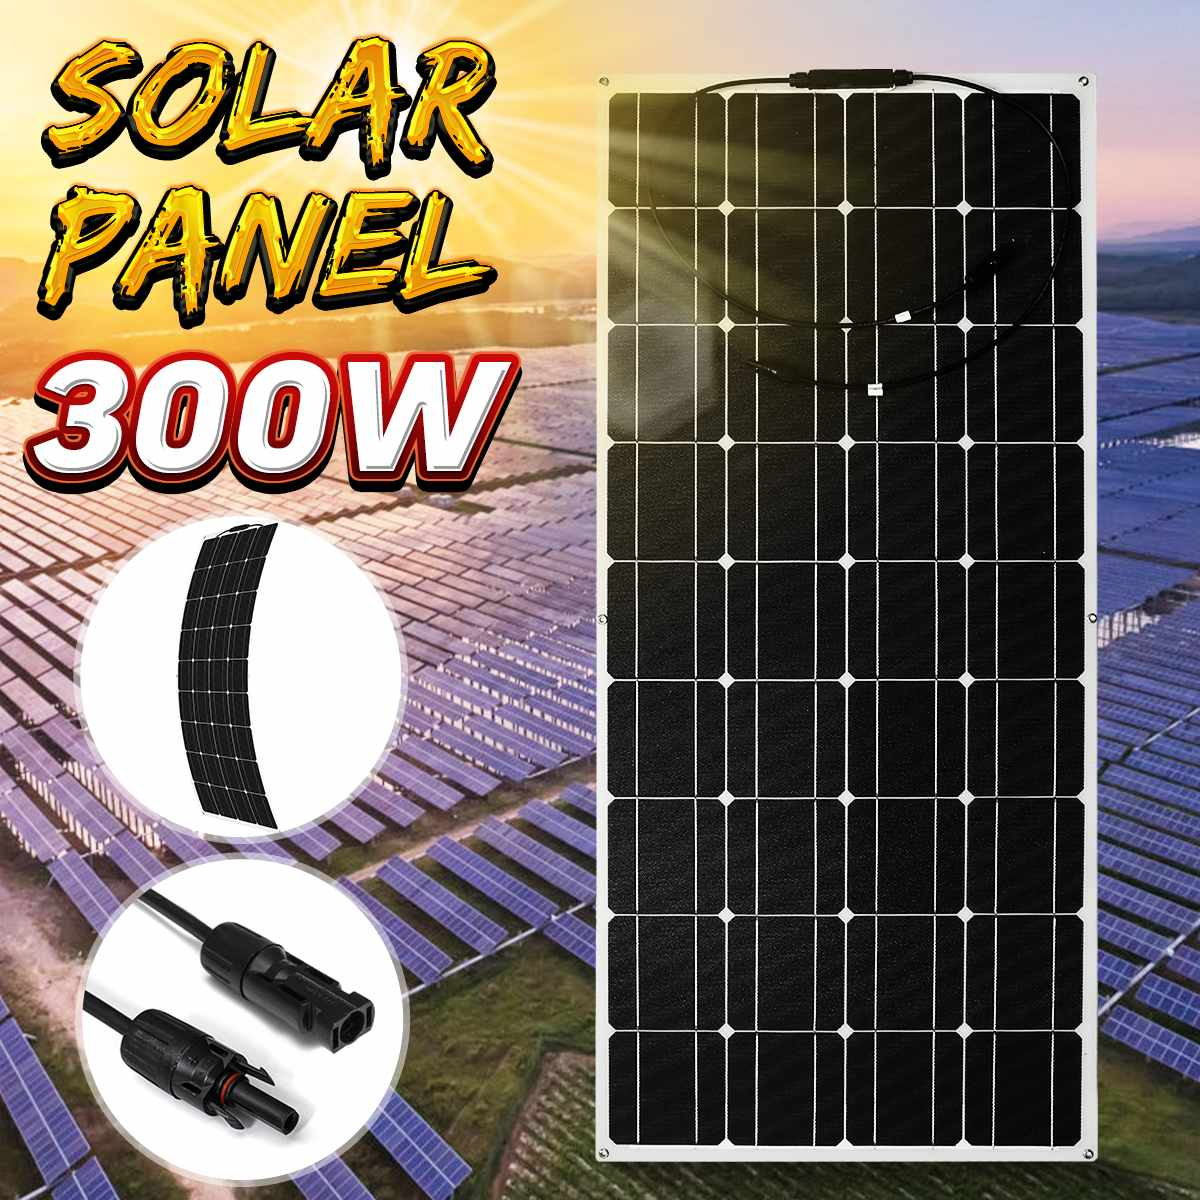 18V Solar Panel 300W Semi-flexible Monocrystalline Solar Cell DIY Module Cable Outdoor Connector Battery Charger Waterproof